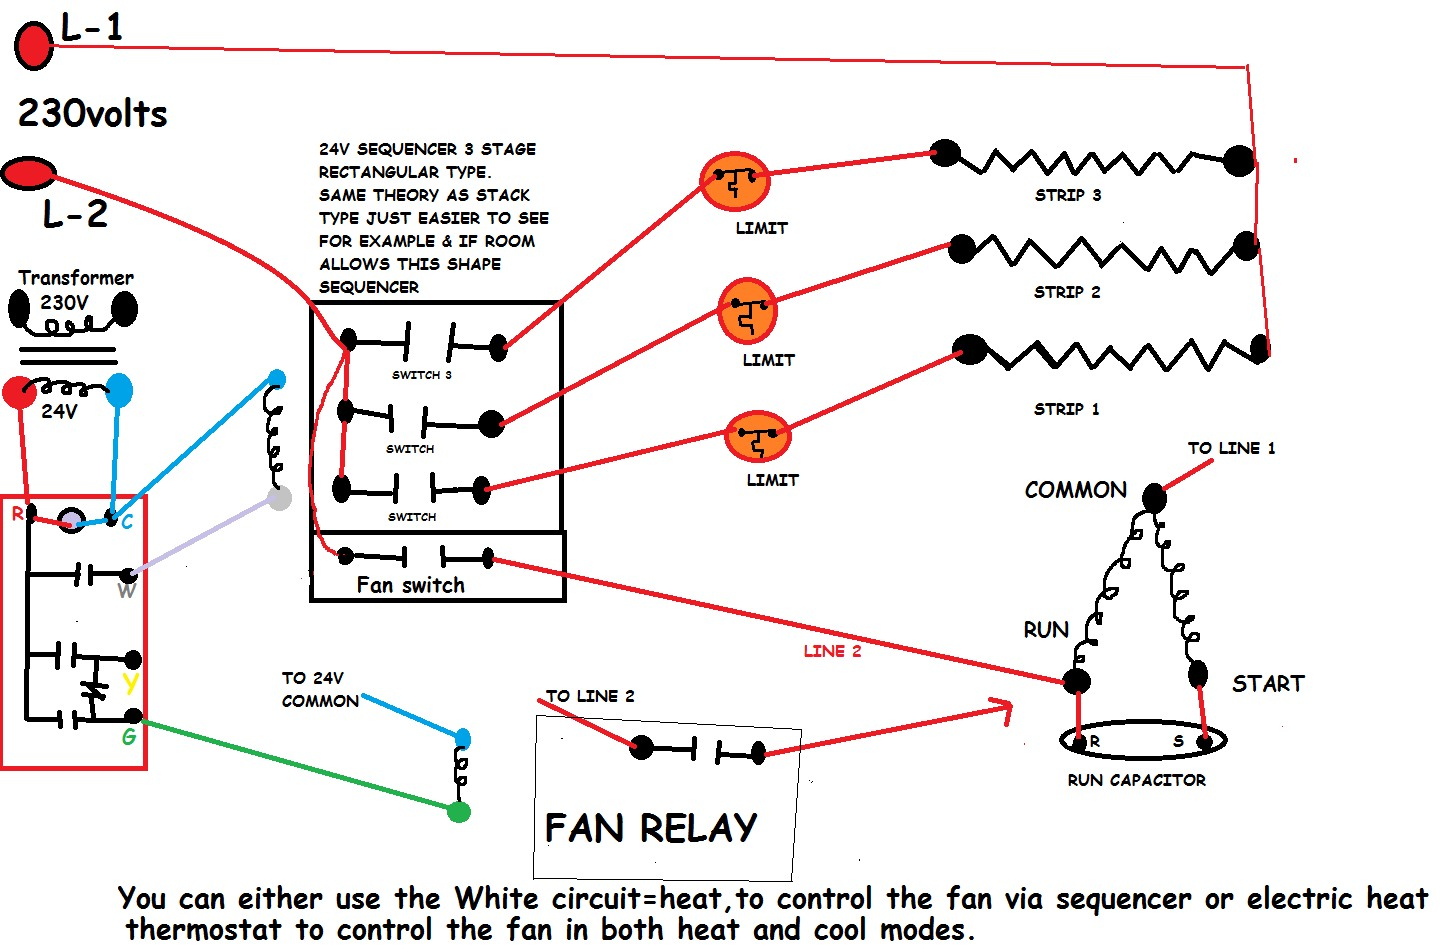 hight resolution of electric furnace relay wiring diagram wiring libraryfurnace fan relay wiring diagram collection fan relay wiring diagram